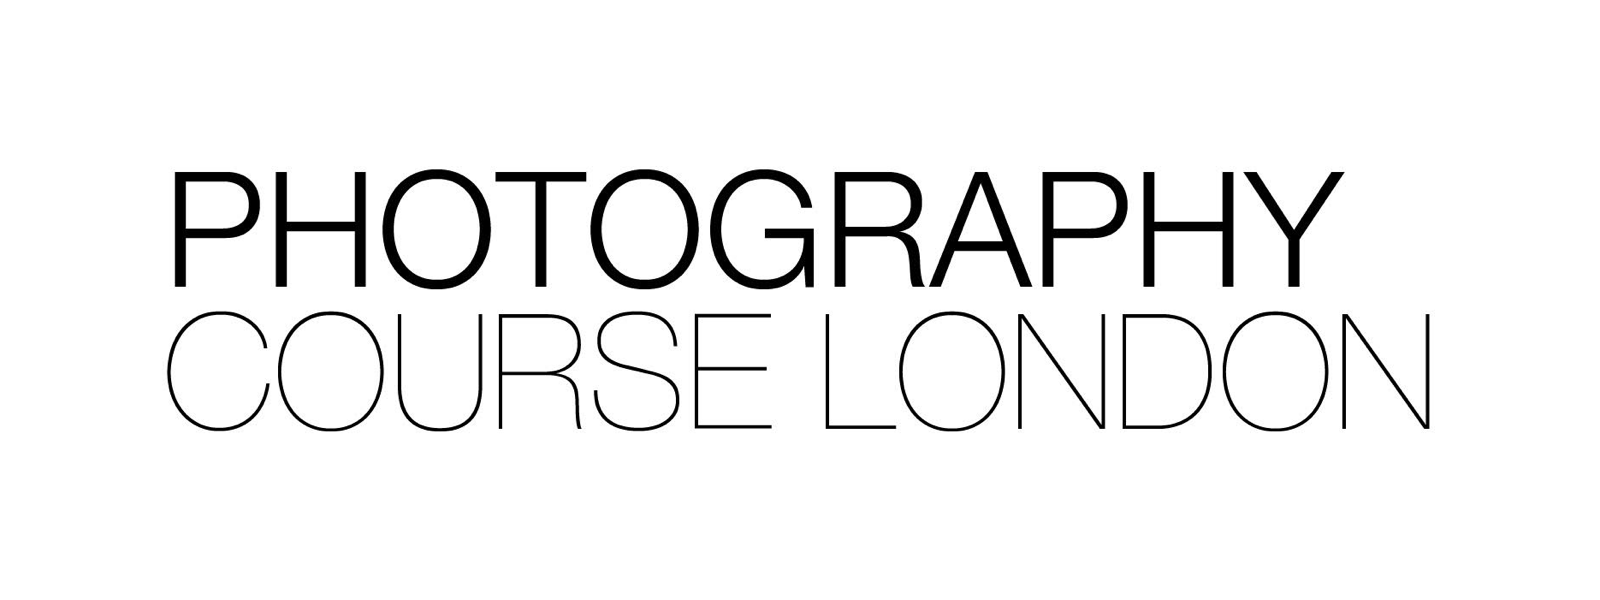 Photoshop Foundation - Level 1 - Photography Editing Course by Photography Course London - photography in London